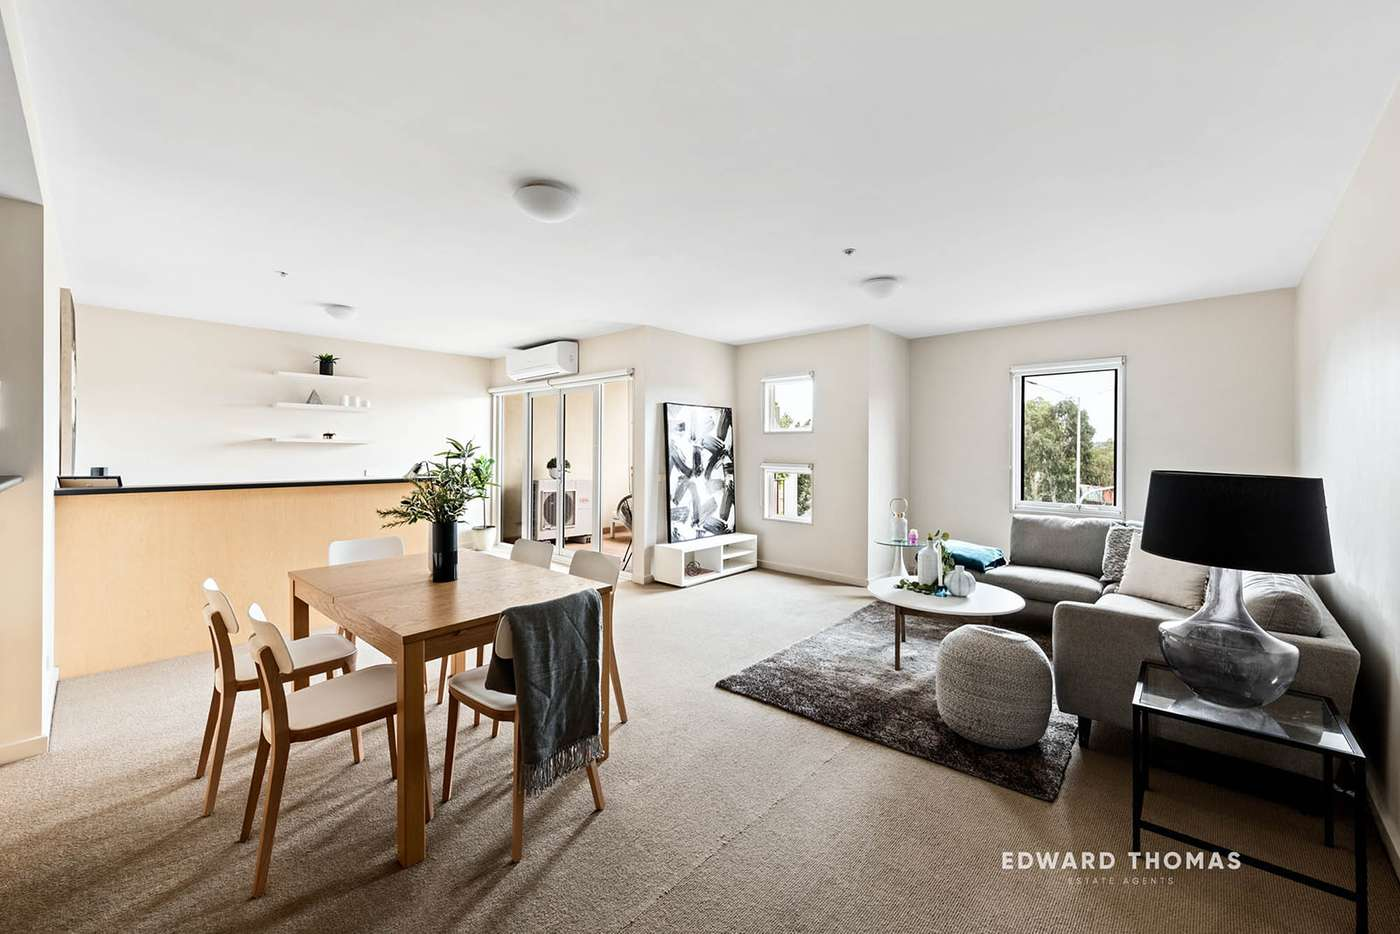 Main view of Homely apartment listing, 19/1 Gatehouse Drive, Kensington VIC 3031